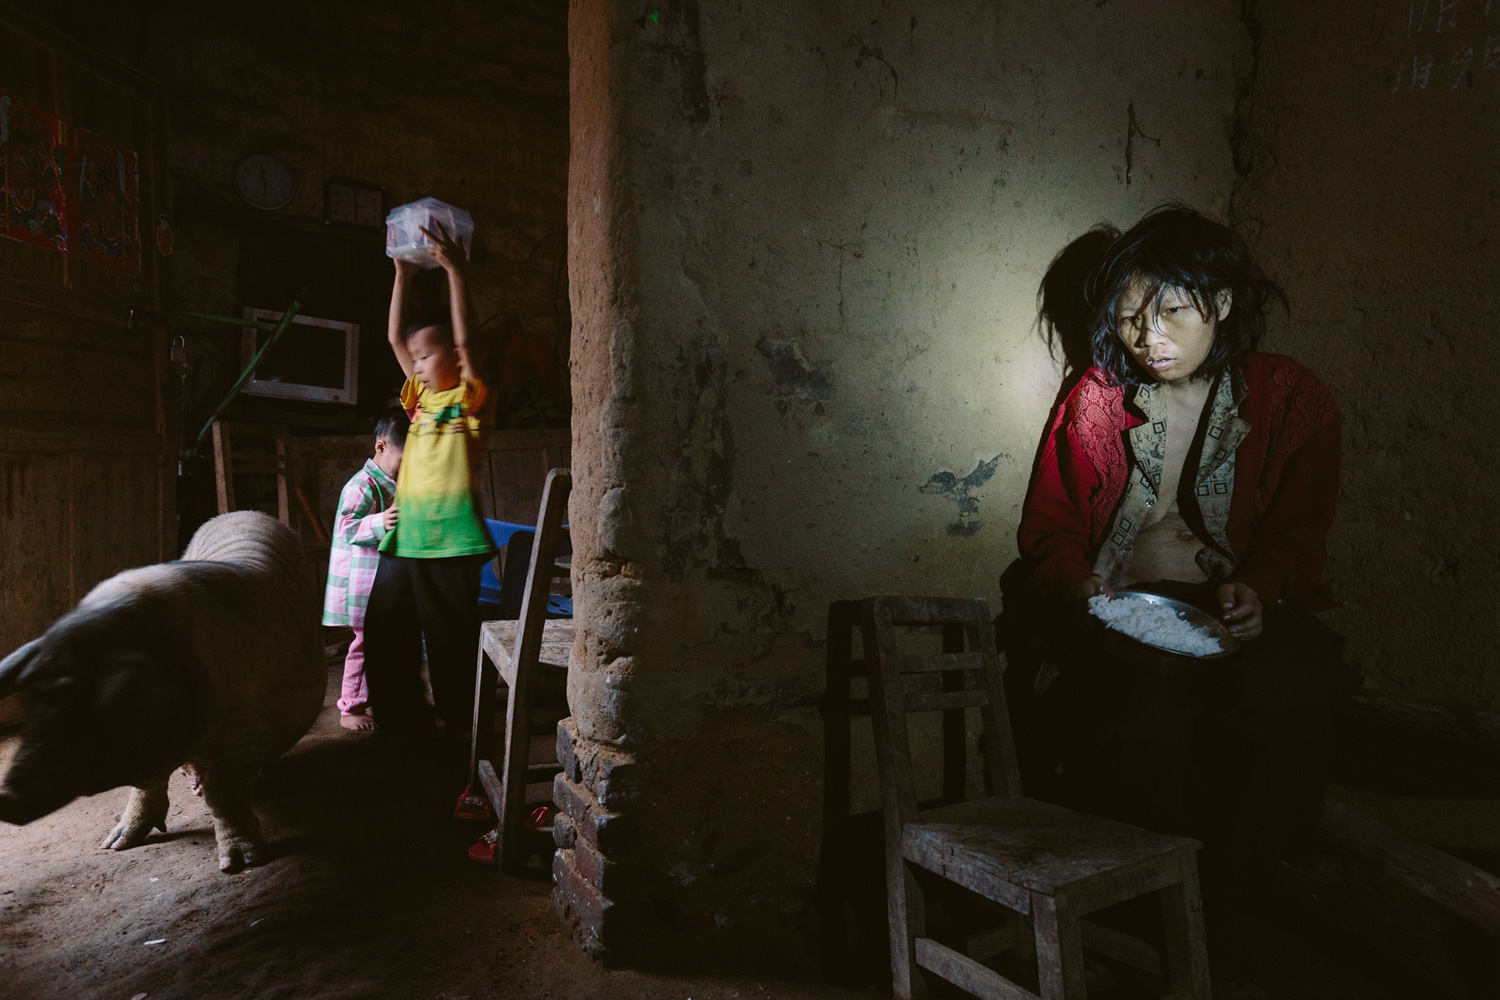 The Guardian: At Home With Mental Illness                               Nine-year-old Tong Xiao and his younger sister Ling Xiao are protecting their food box from a pig. Their mother, Tongyimg Liu, is having her dinner in the corner. Maoming, China.